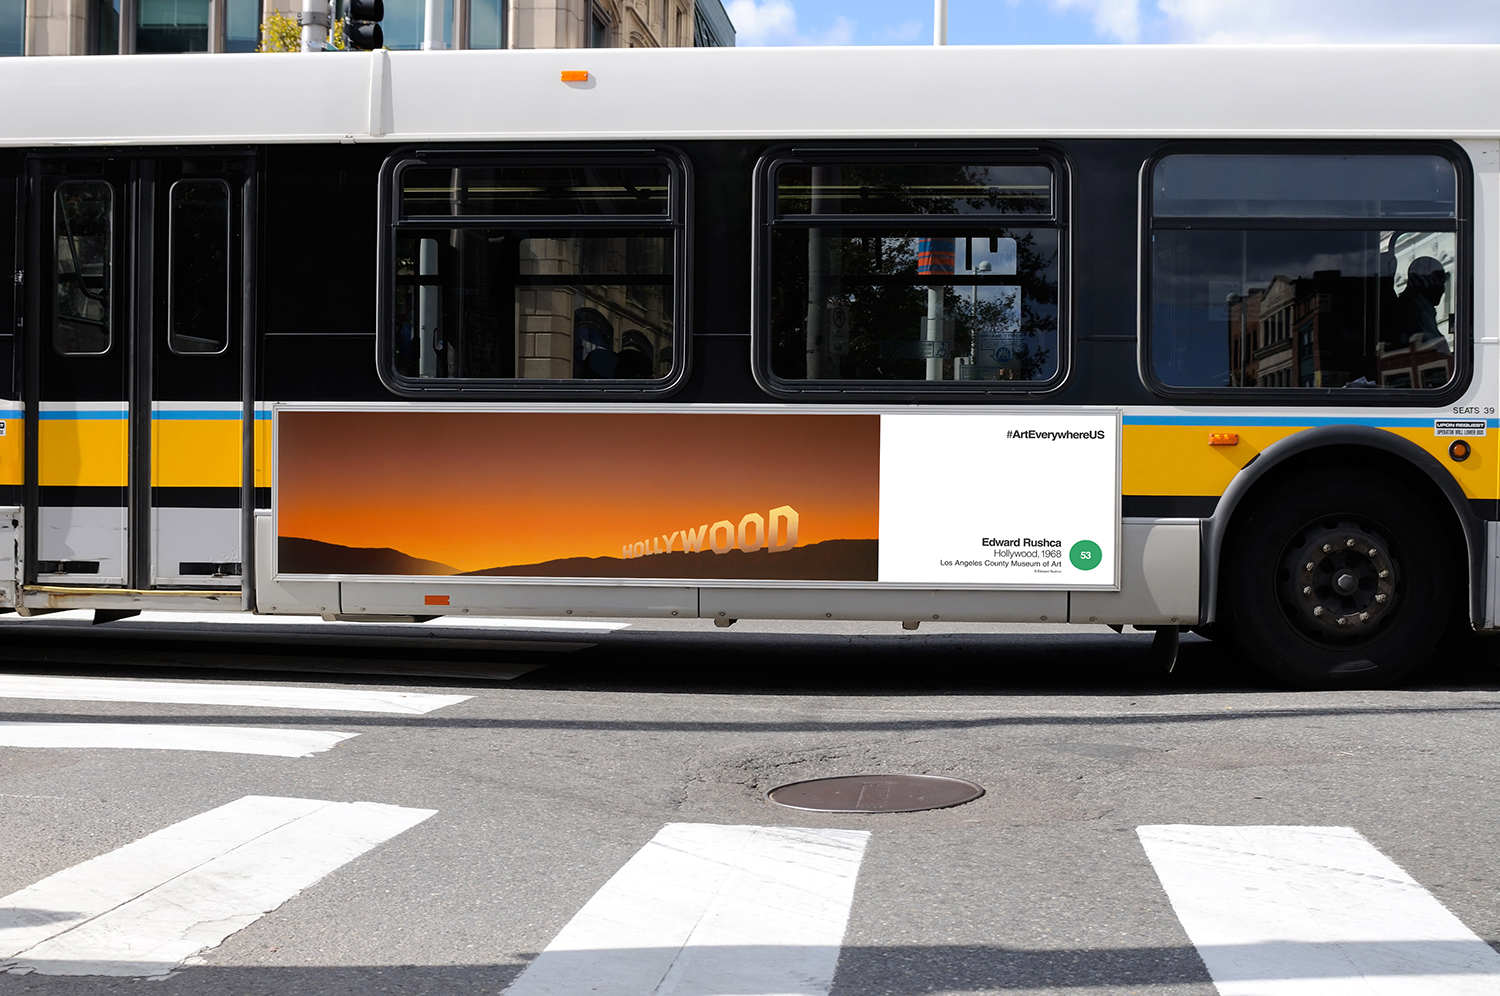 """Edward Rushca's """"Hollywood"""" on the side of a bus (image courtesy of Extra Credit Projects)"""